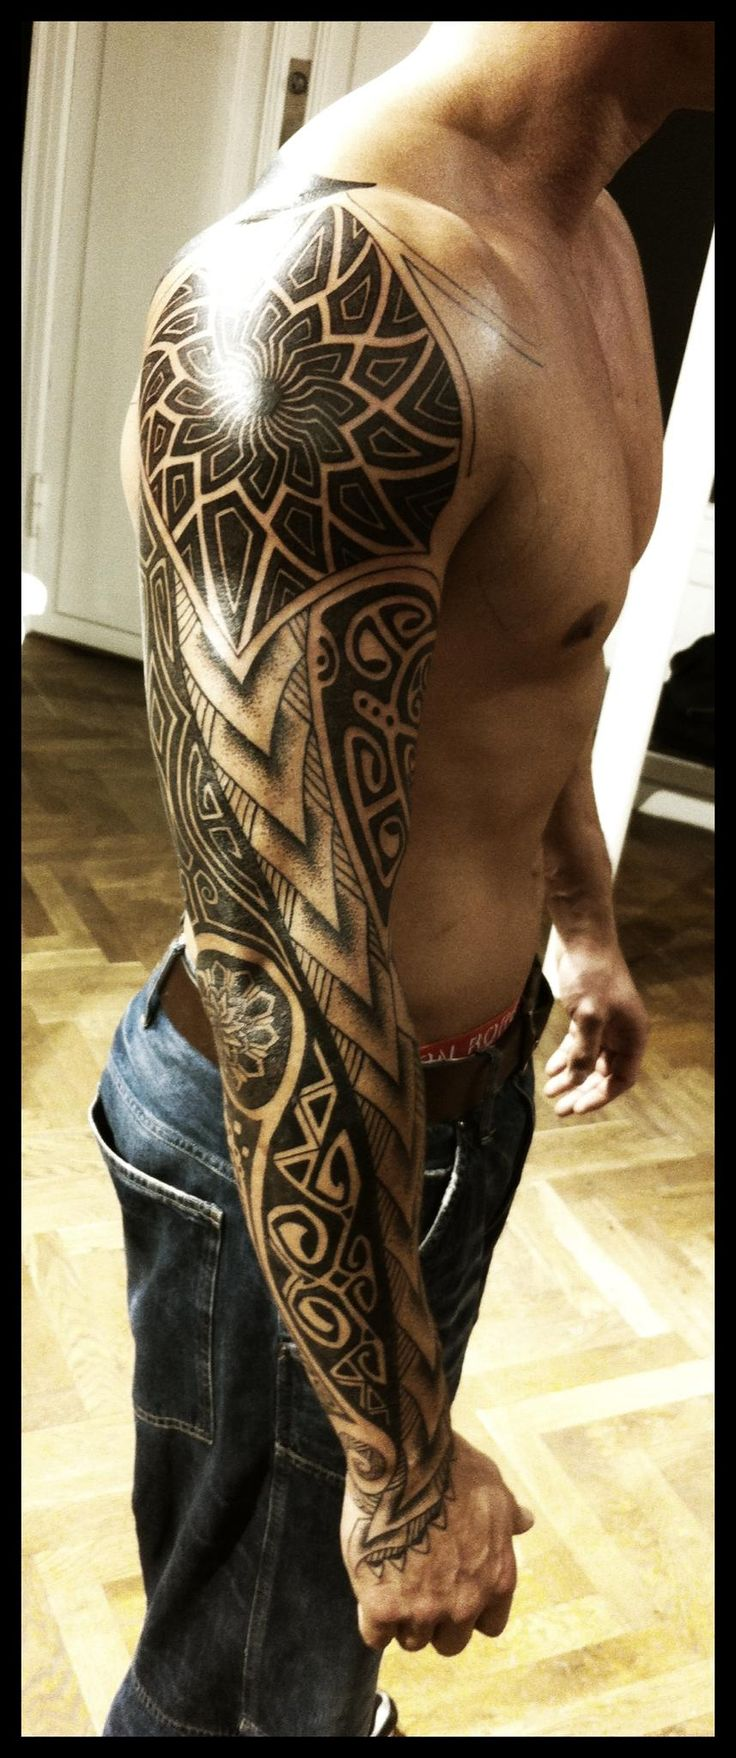 2017 01 tribal tattoo designs for arm - Tahiti Polynesian Tattoo By Meatshop Tattoo Well This Is Going Ahead At A High Pace To Introduce The Project This Guy Is Half Danish Half Tahitian